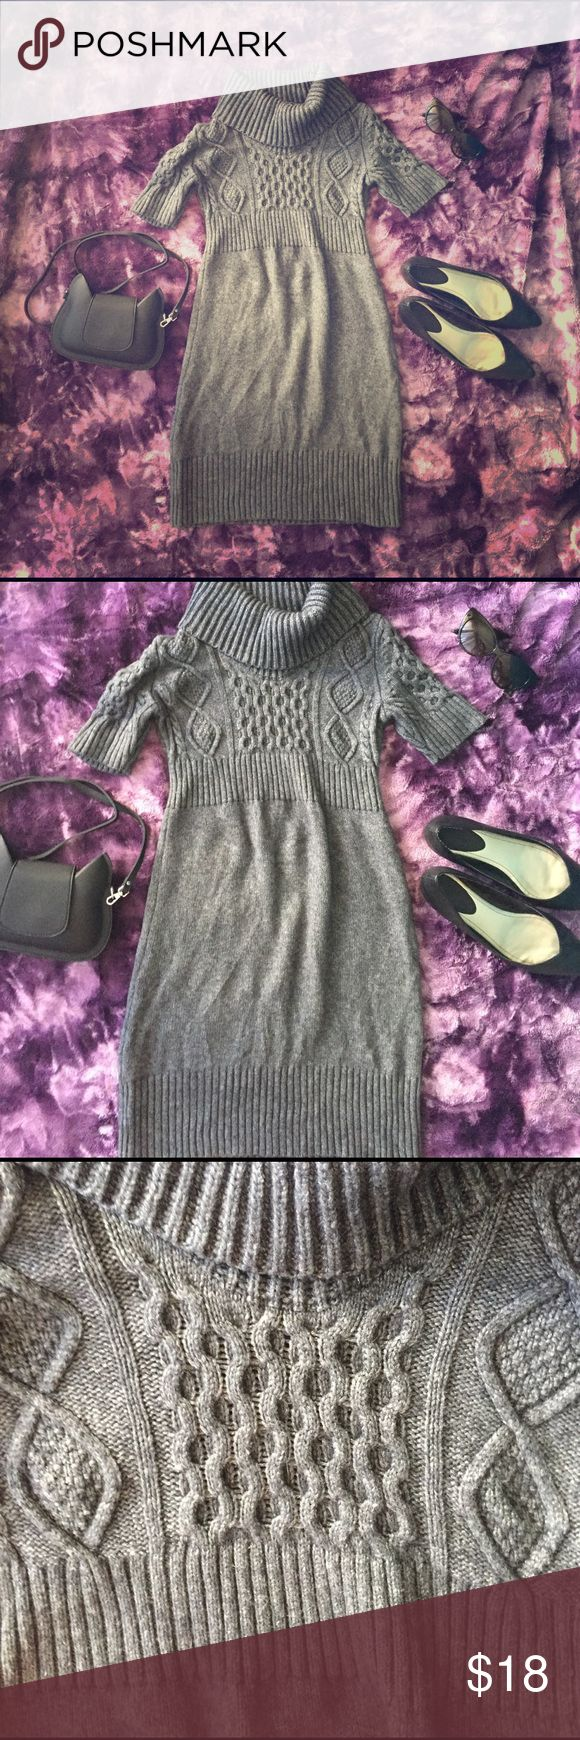 Ann Loft Petite Sweater Dress Measurements to come! Medium petite. Cowl neck. LOFT Dresses Mini